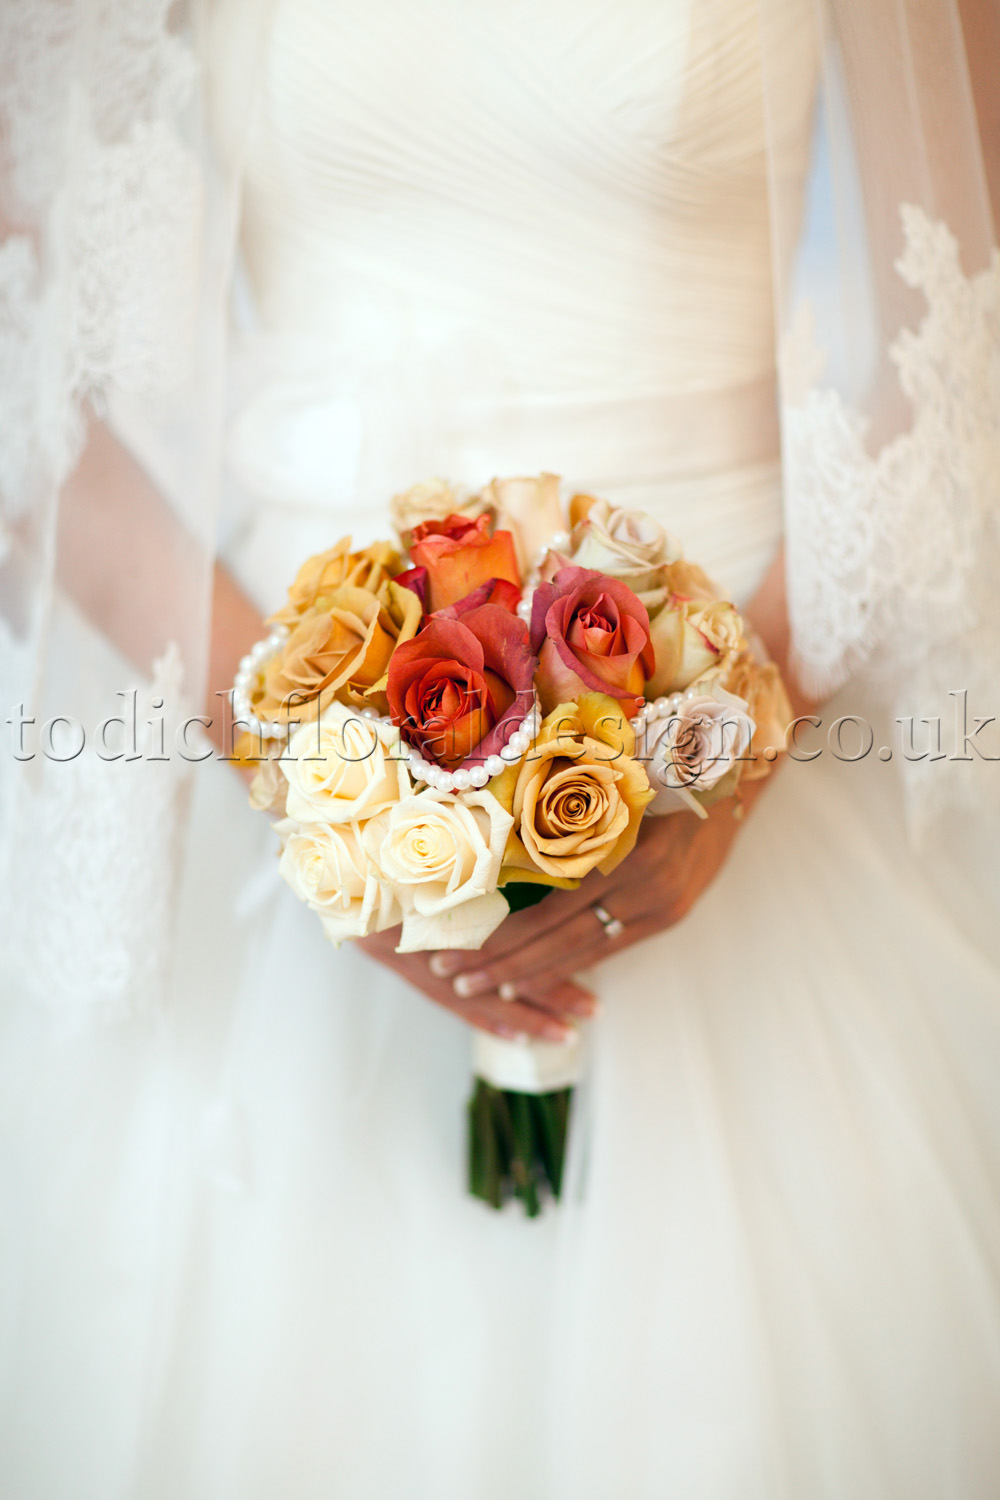 orange-peach-yellow-autumn-bridal-bouquet-styles-autumn-wedding-flowers-in-season-by-london-wedding-florist-rustic-autumn-wedding-bouquets-autumn-wedding-flower-arrangements